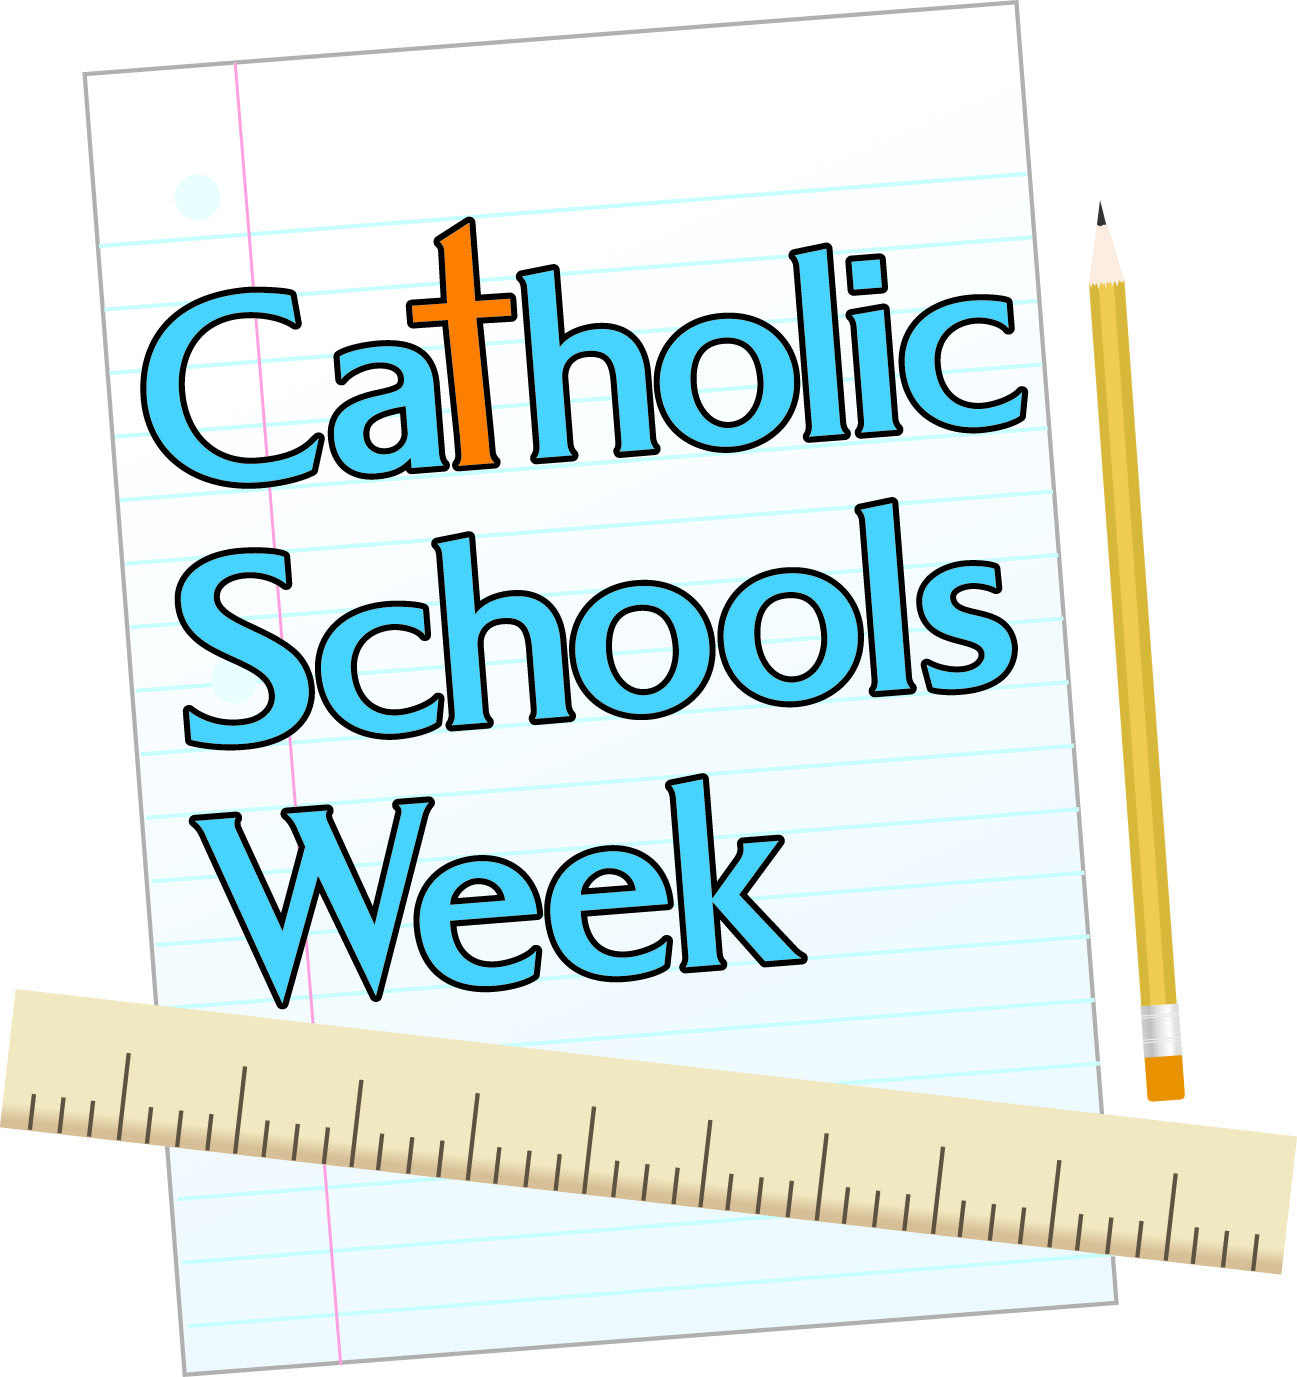 Displays Catholic Schools Week